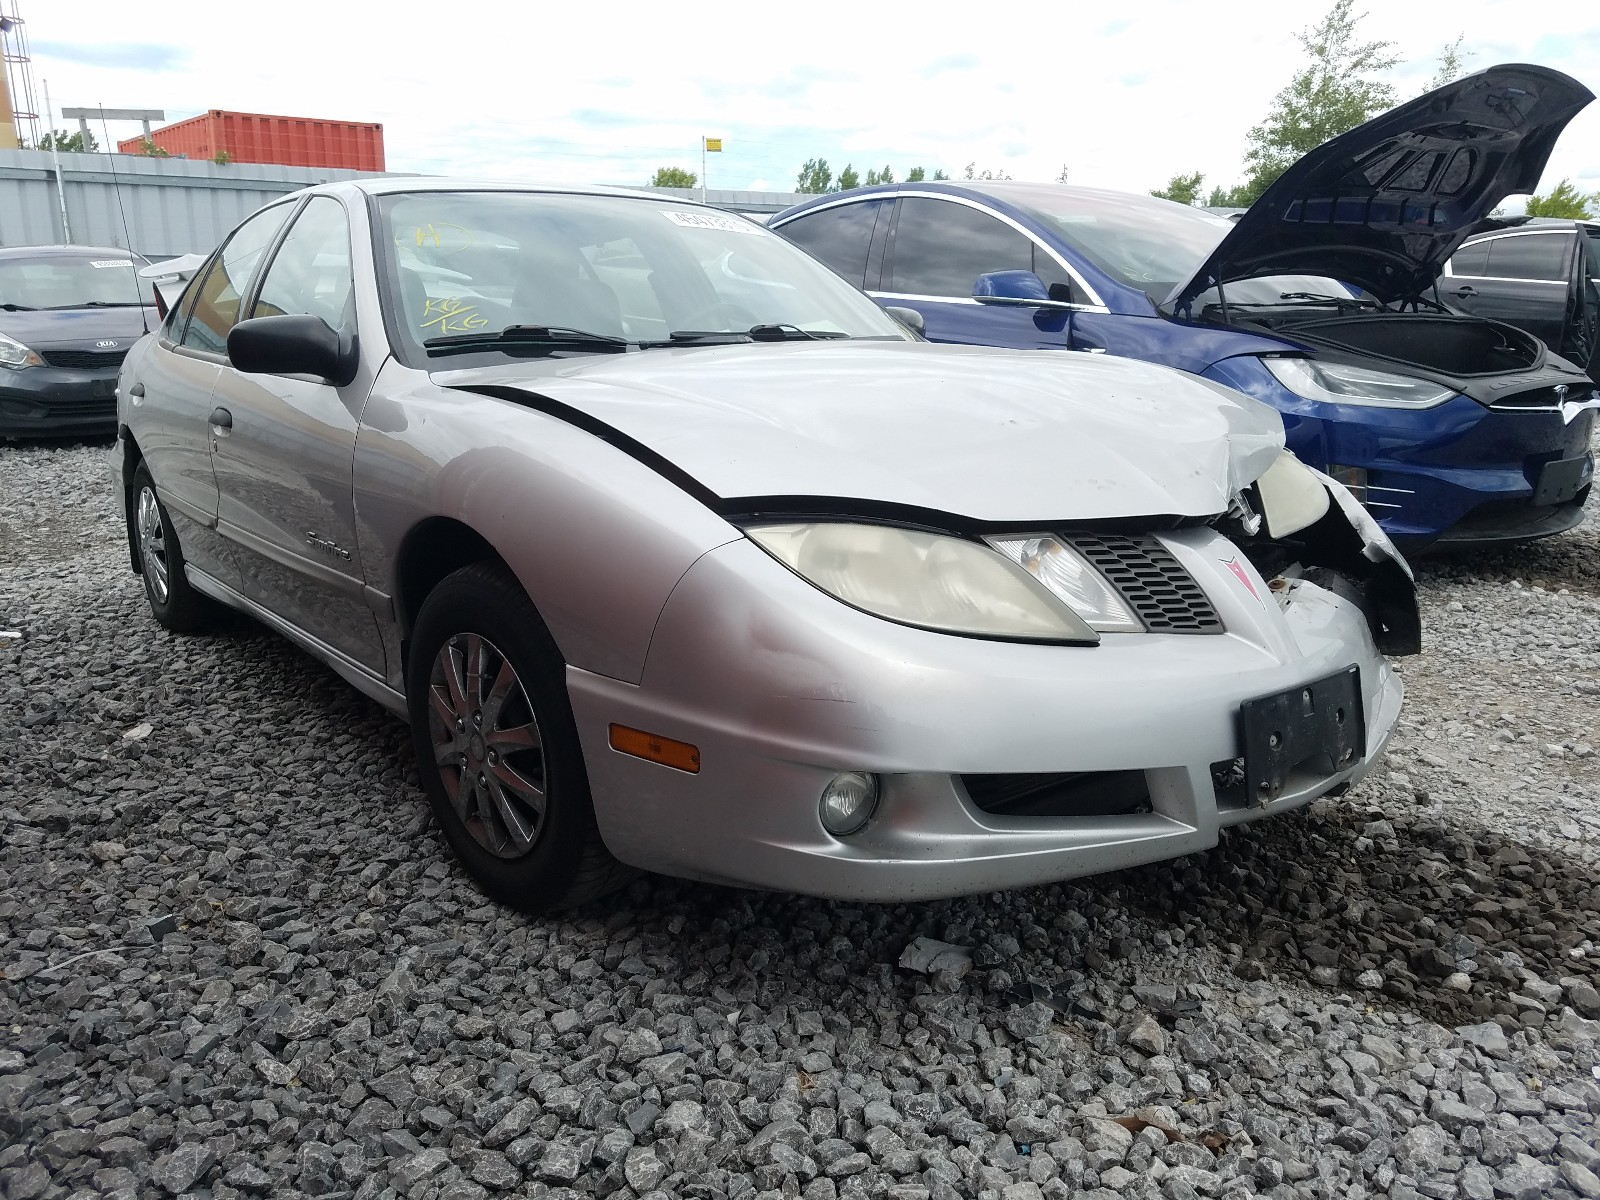 2003 pontiac sunfire sl for sale at copart courtice on lot 45473810 salvagereseller com salvagereseller com